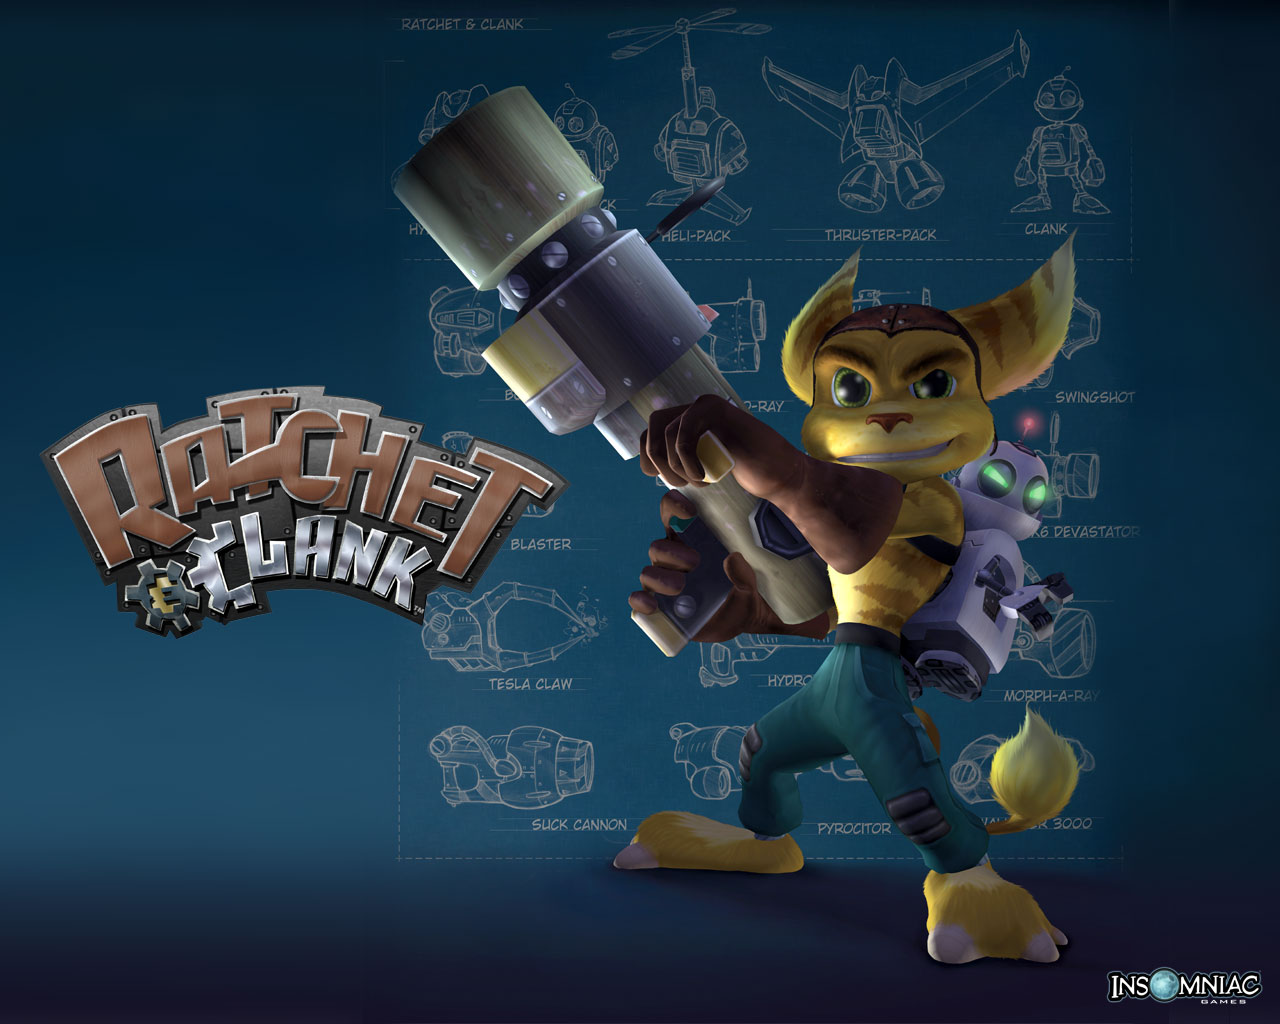 Ratchet Clank Darkstation